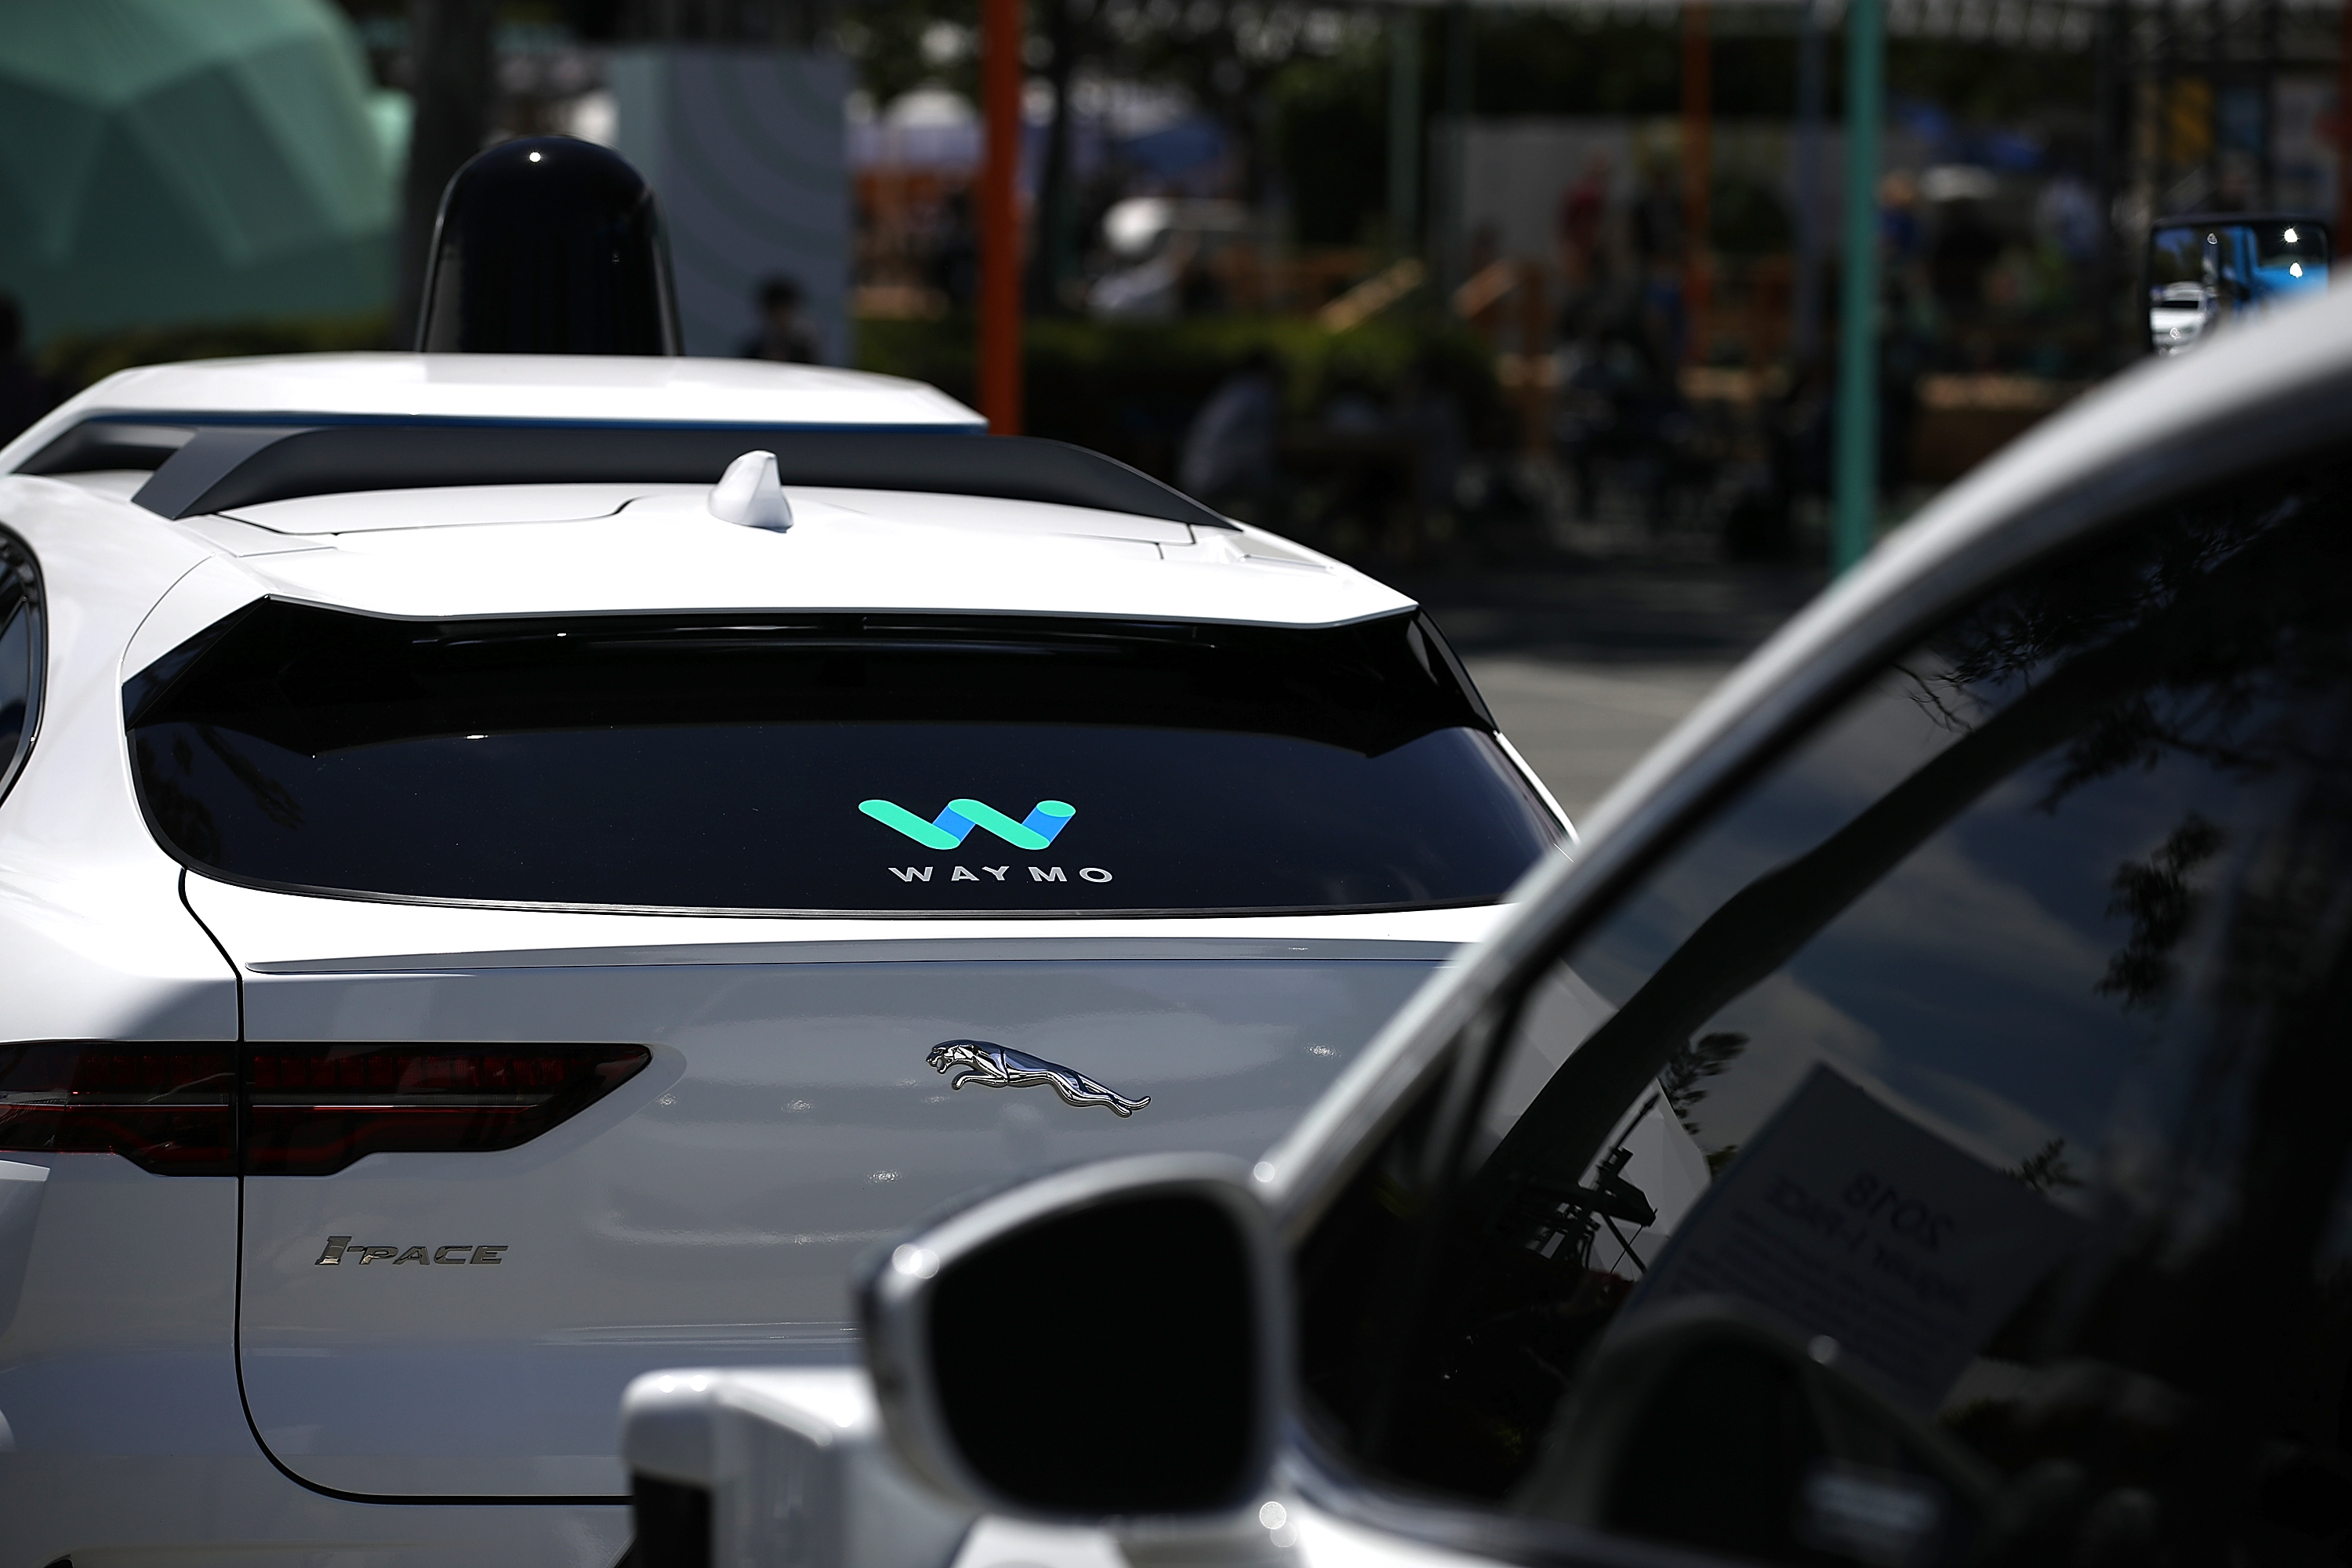 Self-driving cars have to be safer than regular cars. The question is how much.